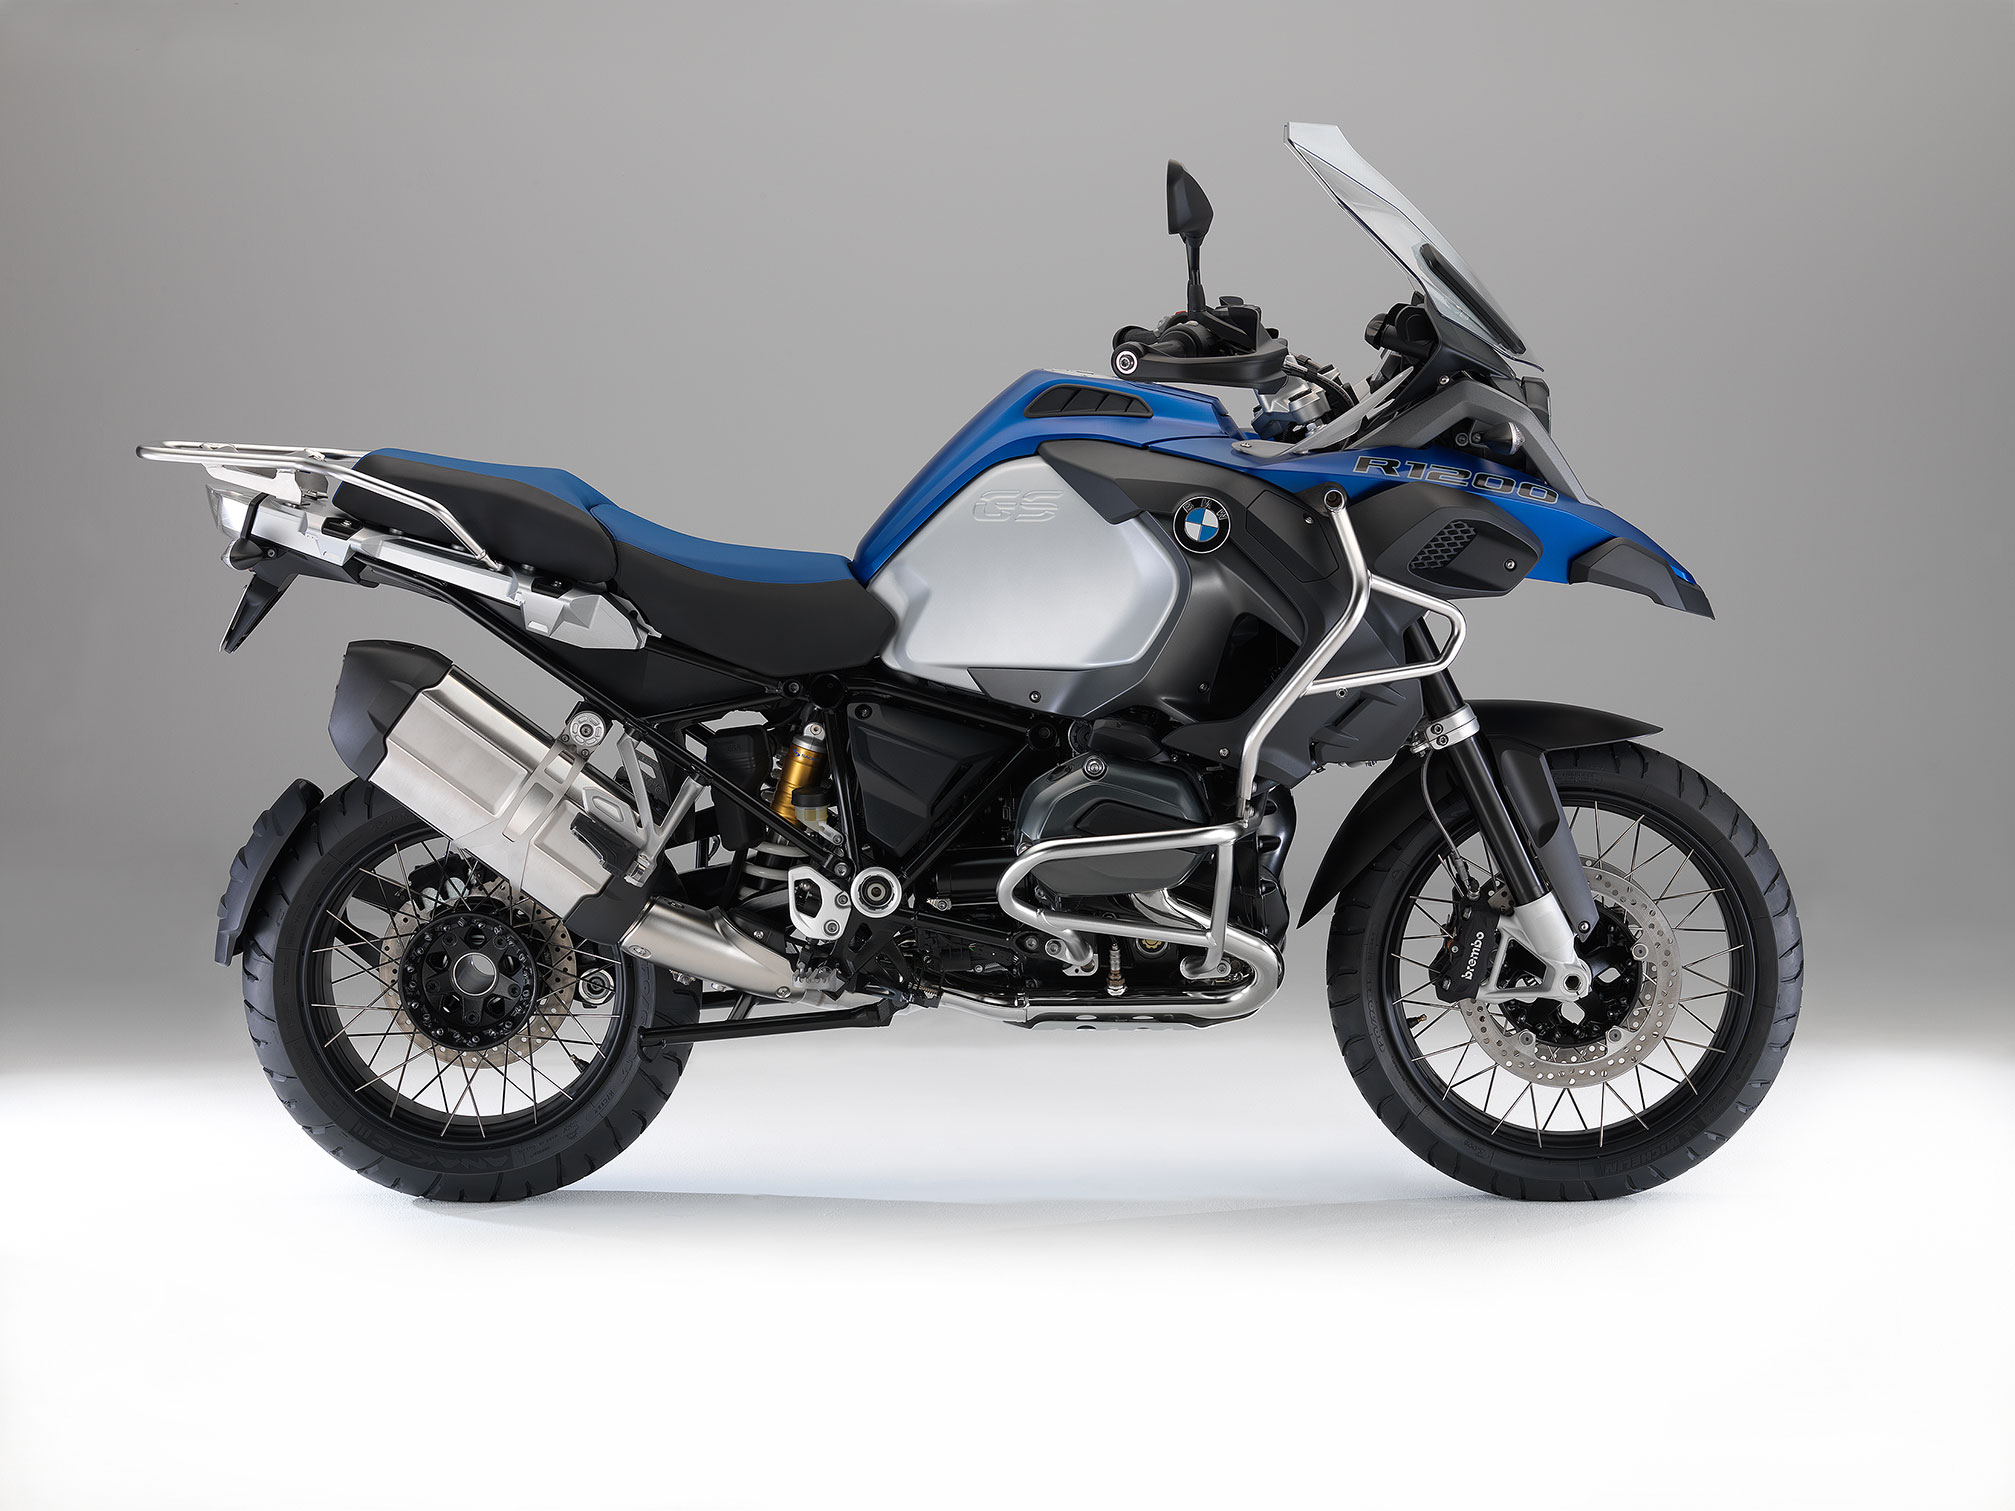 BMW R1200GS Adventure 2015 images #78345